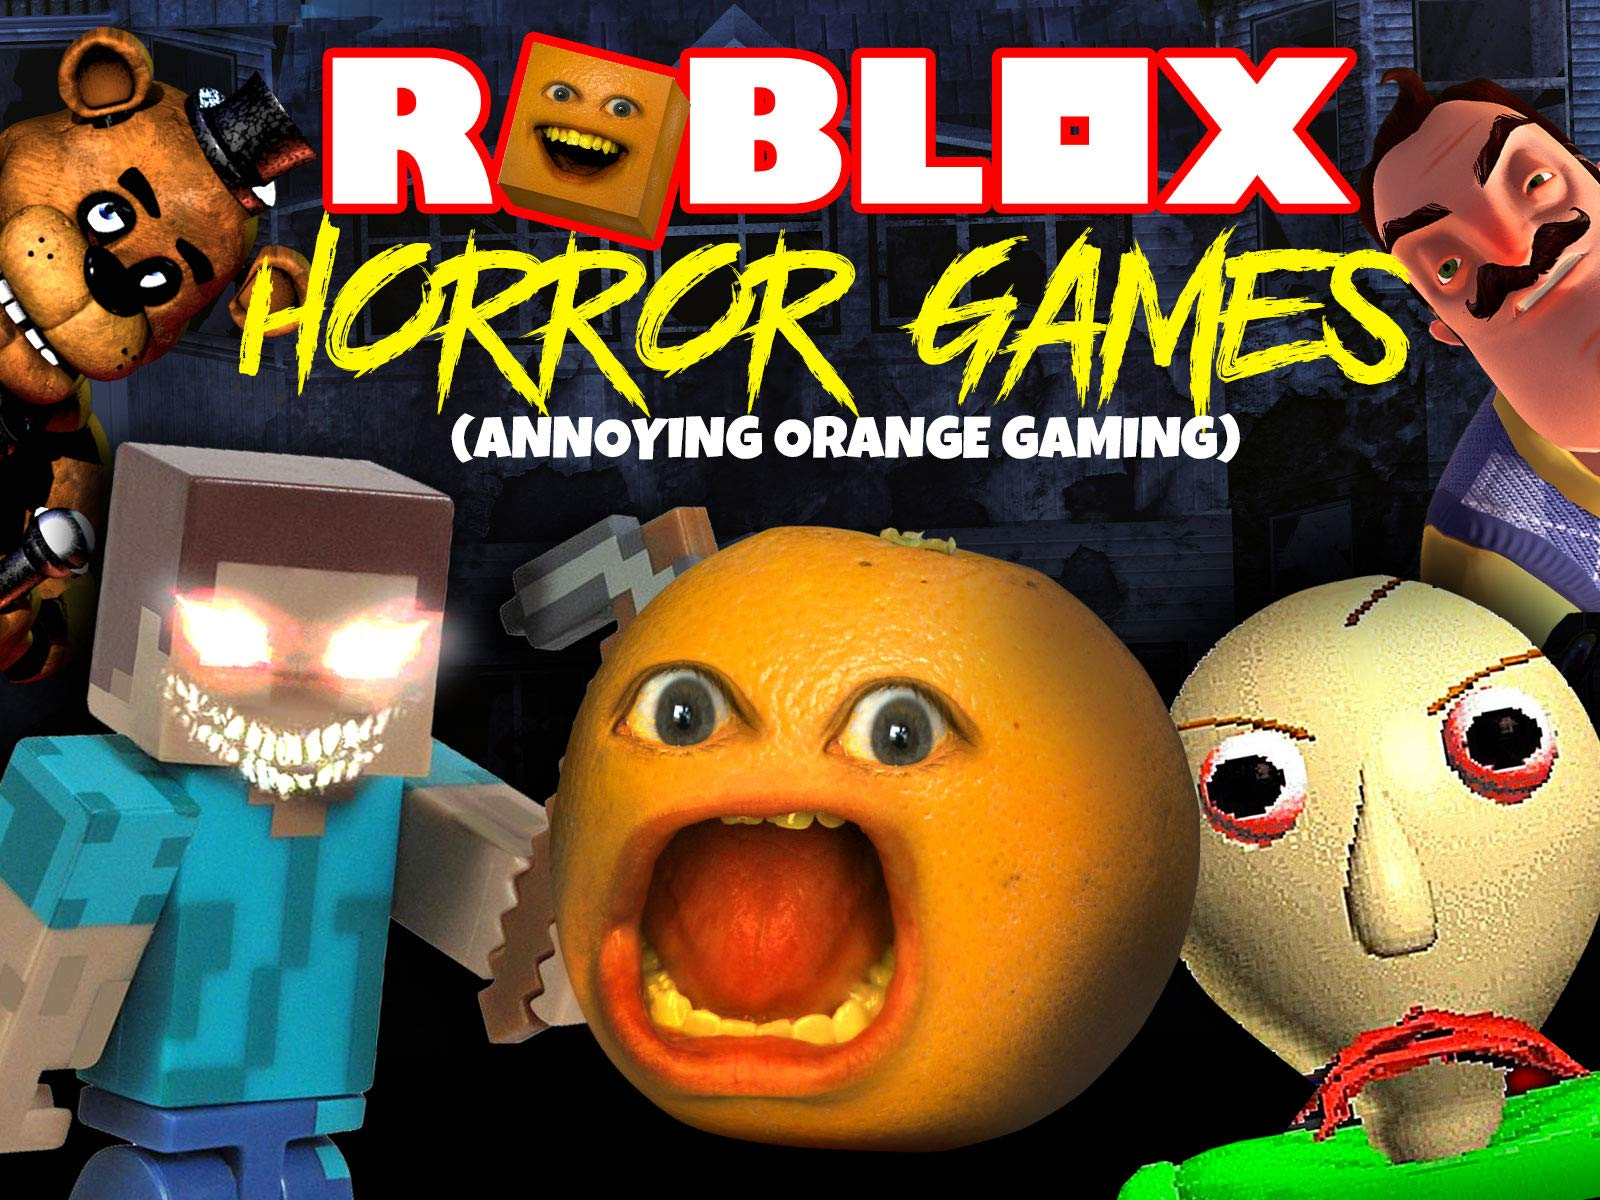 Baby Alive Inside Roblox Hello Neighbor Game In Real Life Tattletale Game Watch Clip Annoying Orange Let S Play Tattletail Scary Furby Gaming Prime Video